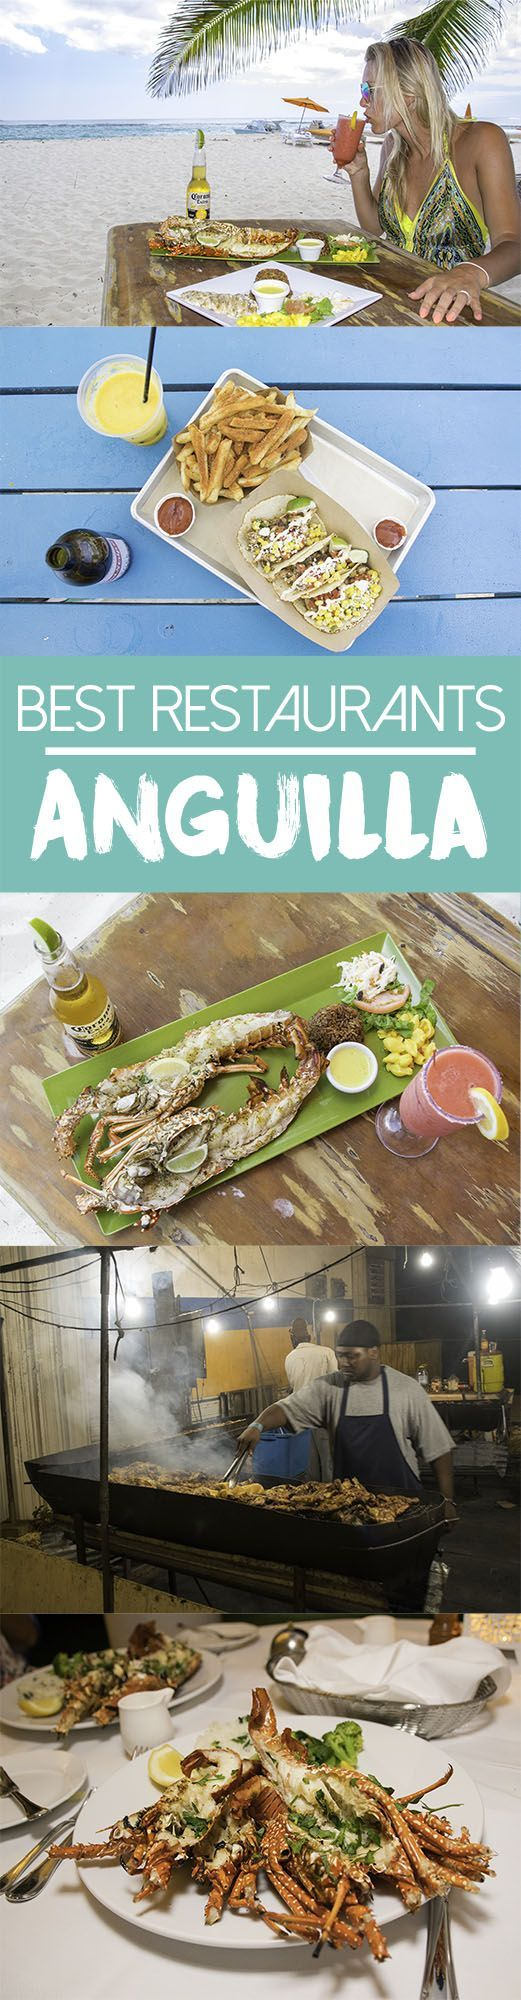 Anguilla may be a small island but it has a great food scene with a large variety of cuisines. The best restaurants in Anguilla will not disappoint.